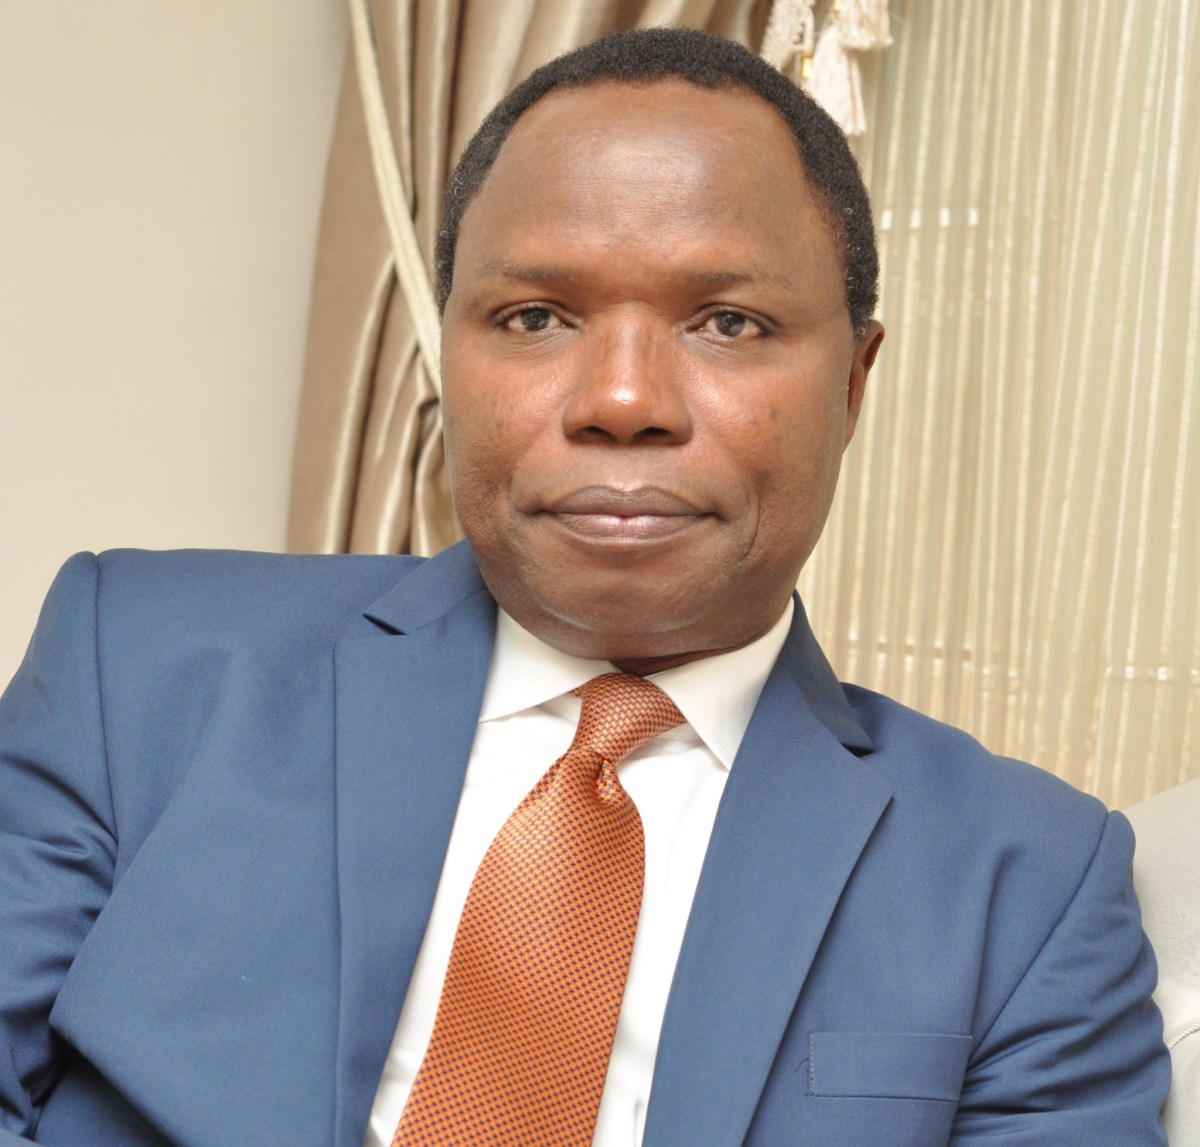 Surviving Recession Without Selling National Asset, By Odilim Enwegbara